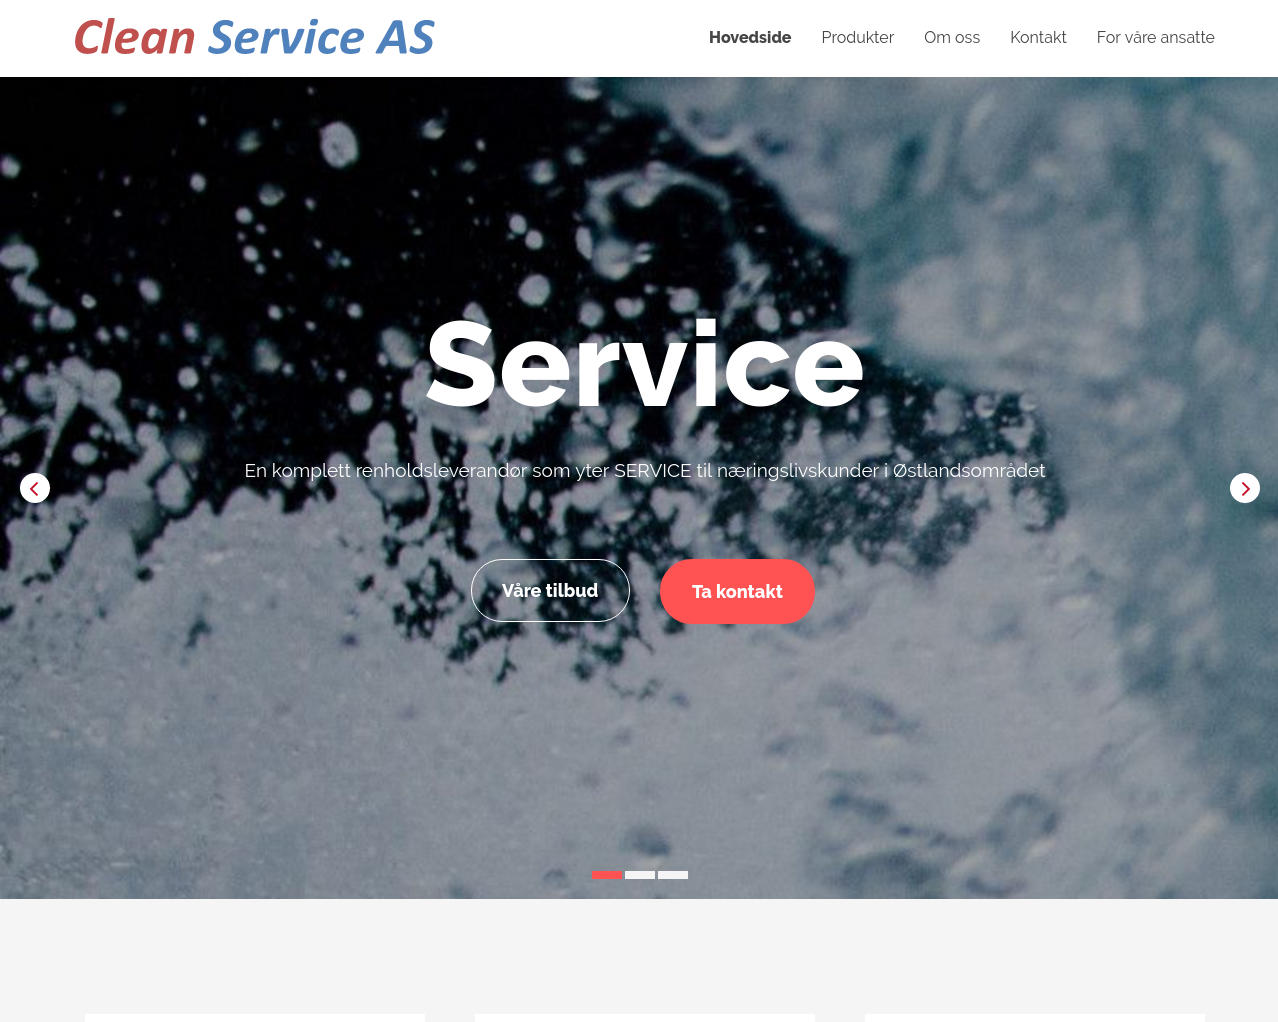 cleanservice.no presentation